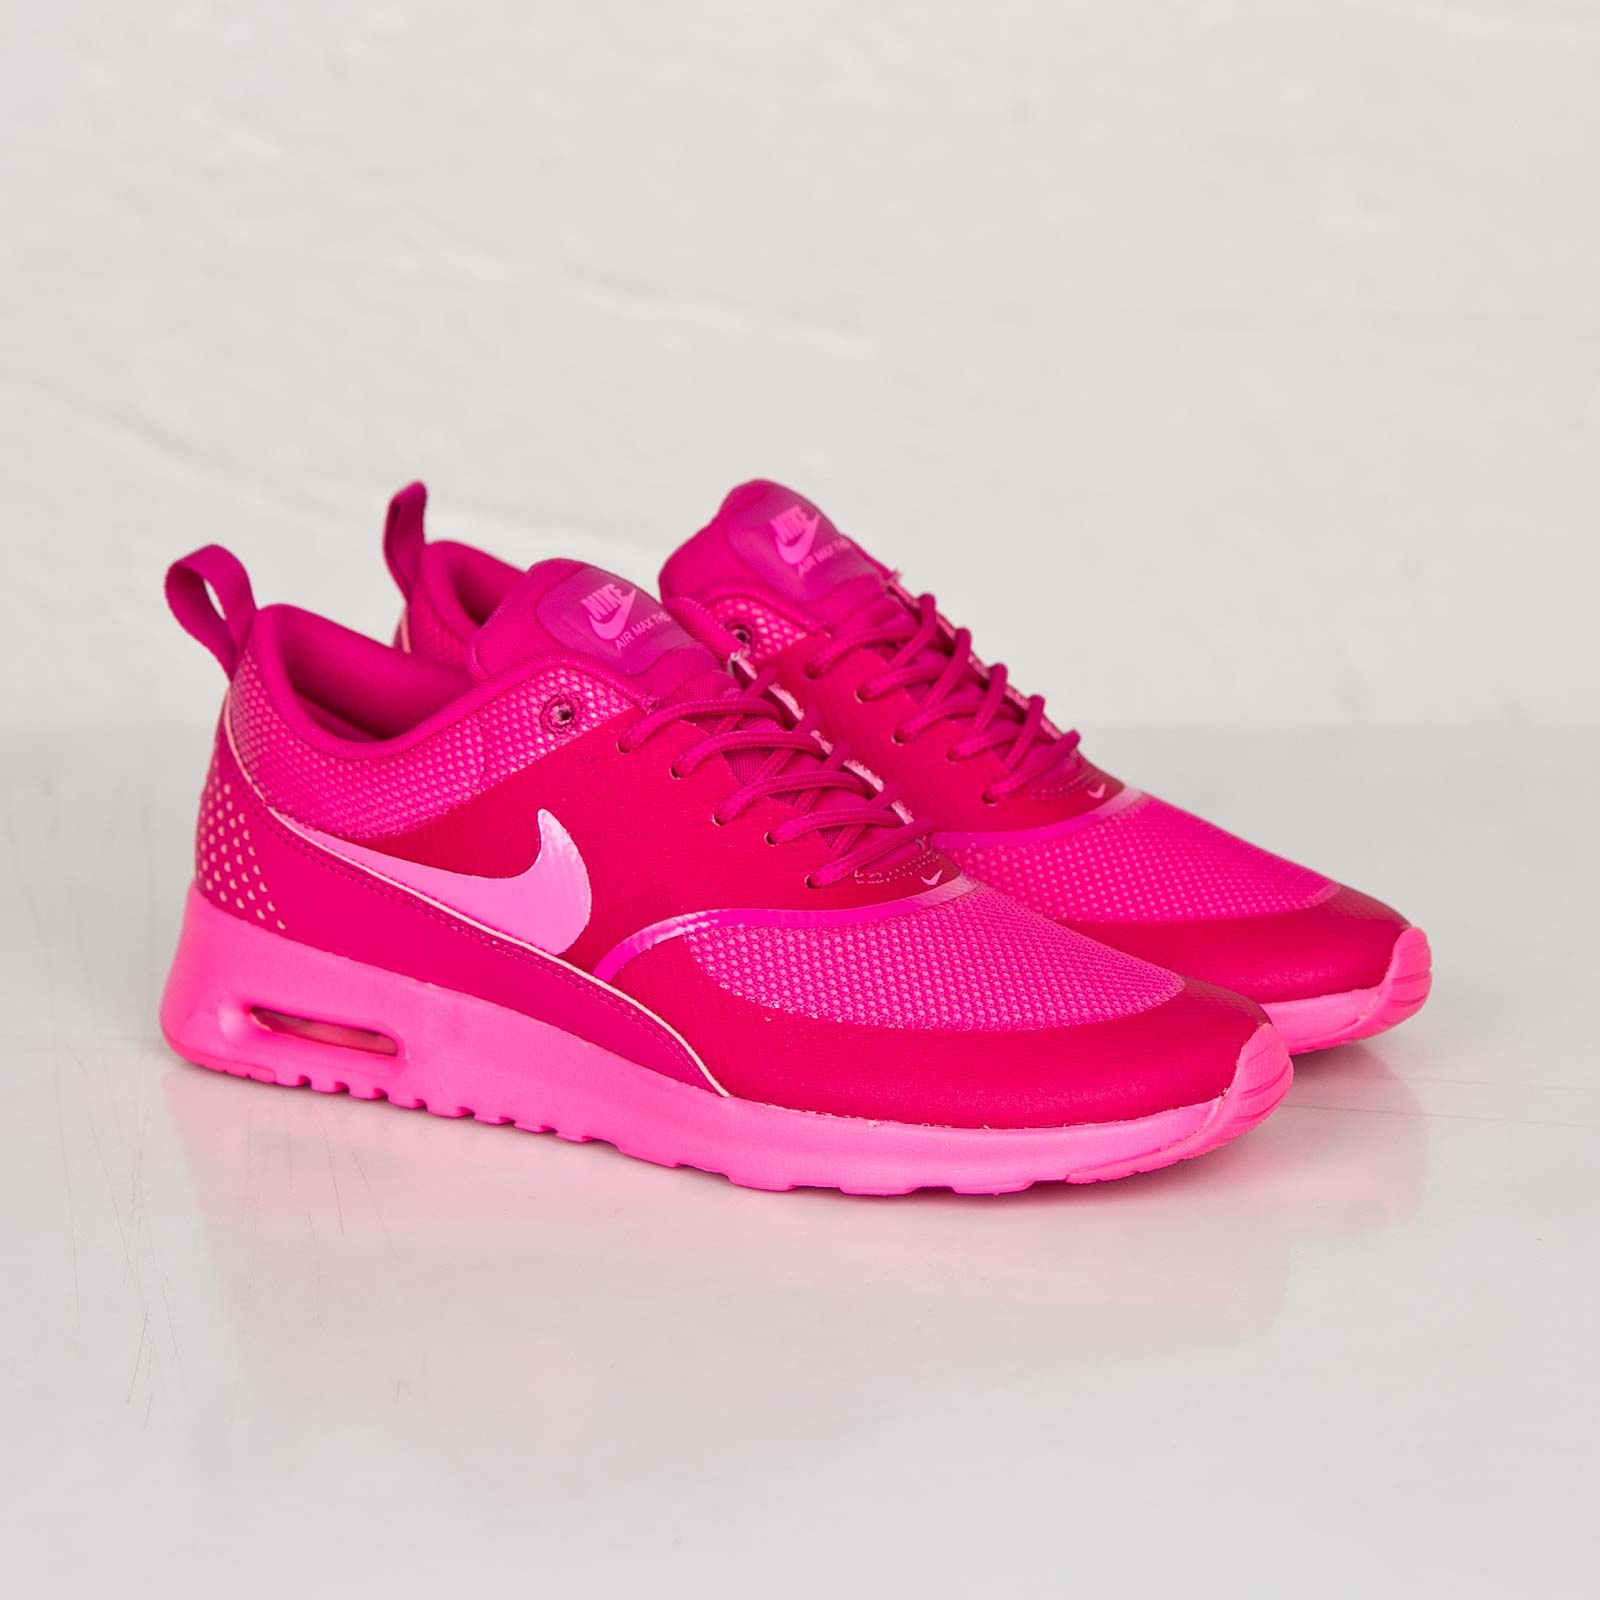 Nike Wmns Air Max Thea 599409 604 Sneakersnstuff